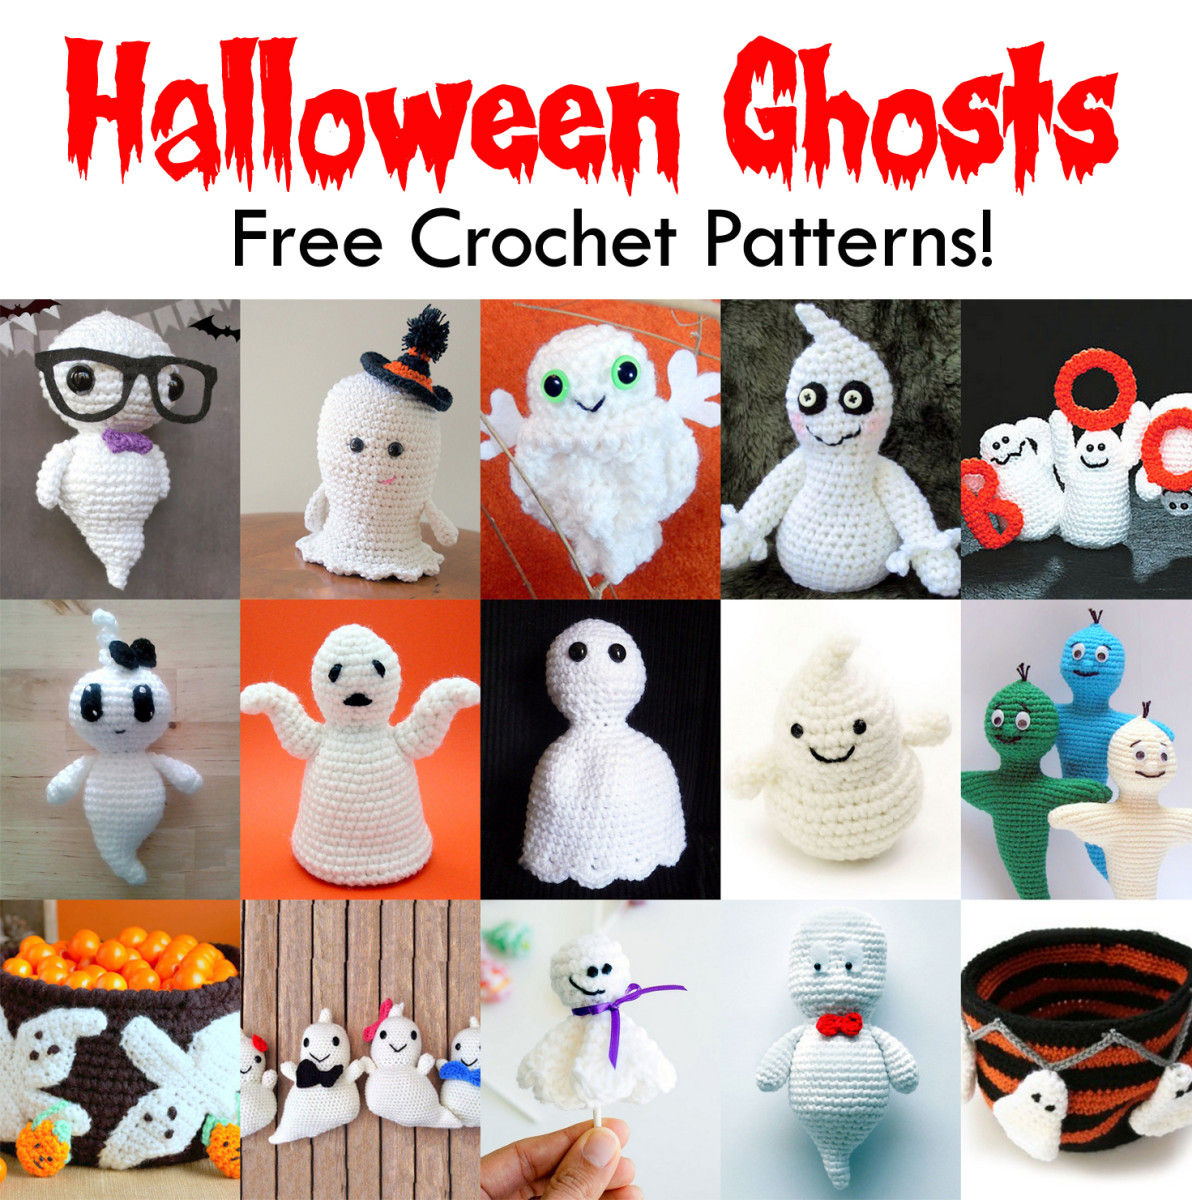 25 Free Halloween Ghost Crochet Patterns